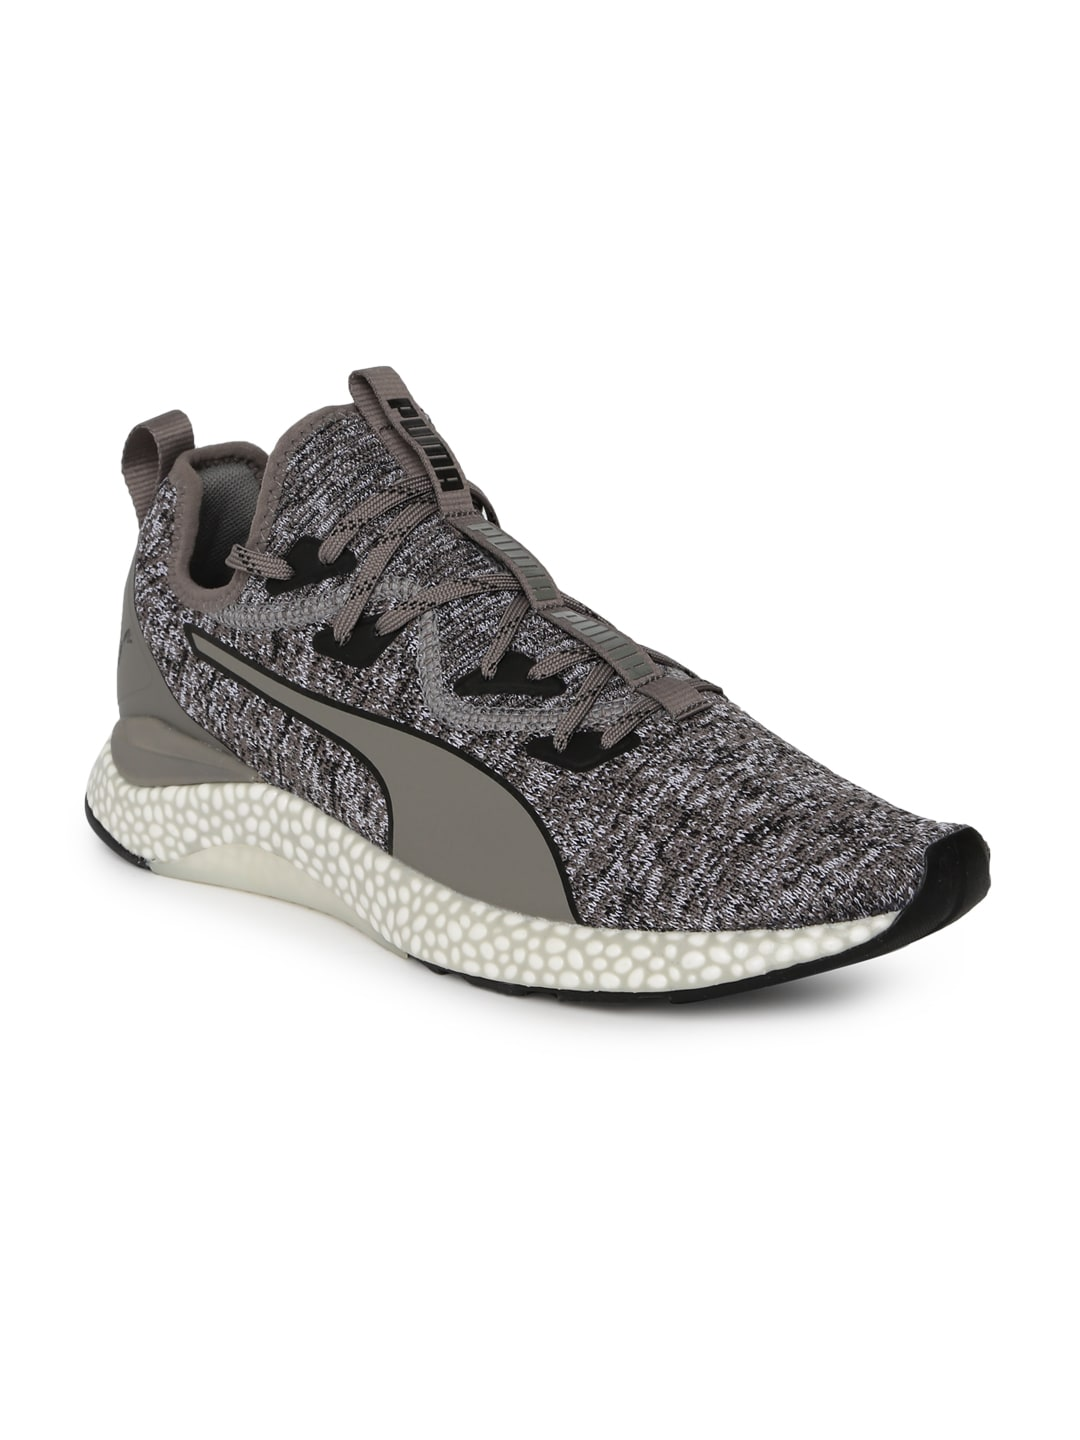 3ad0027c8 Puma Shoes - Buy Puma Shoes for Men   Women Online in India